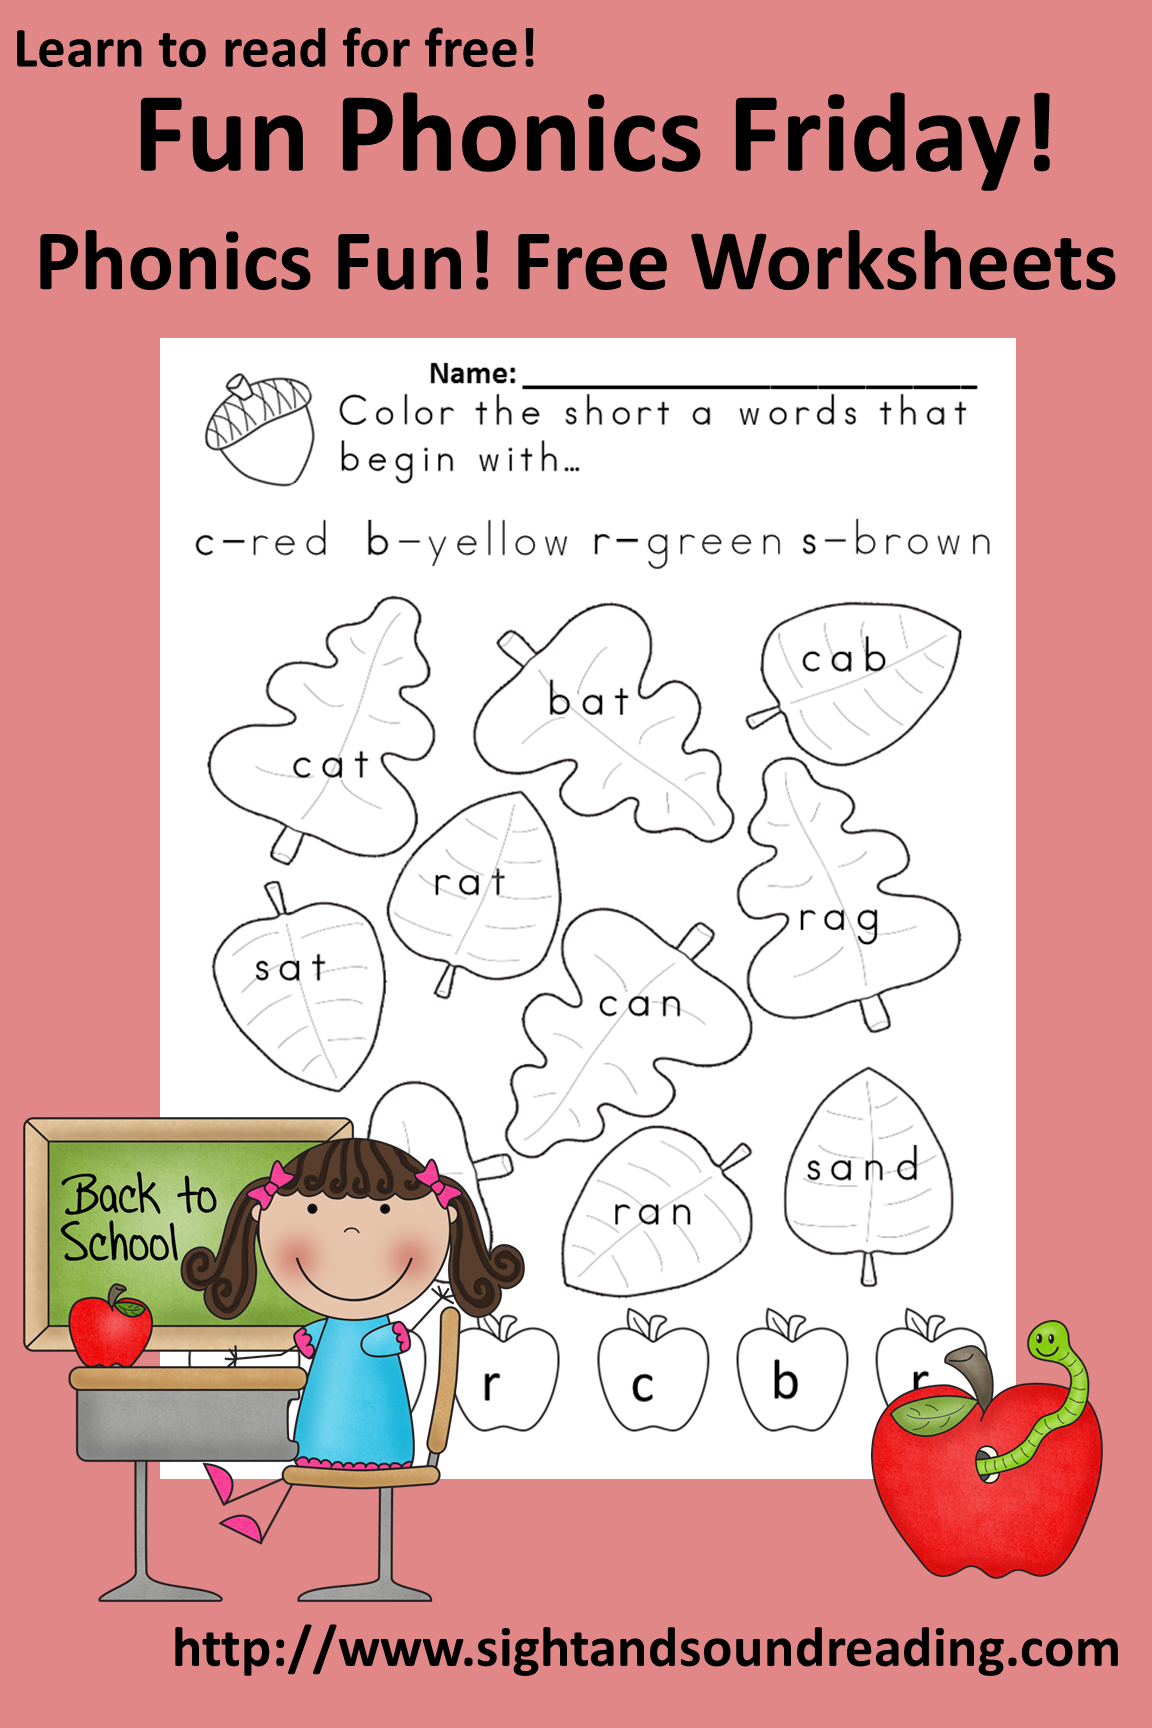 Worksheet Phonics Activities For Kindergarten cut and paste activity for kindergarten learning is fun short a free phonics worksheet more reading resources visit https